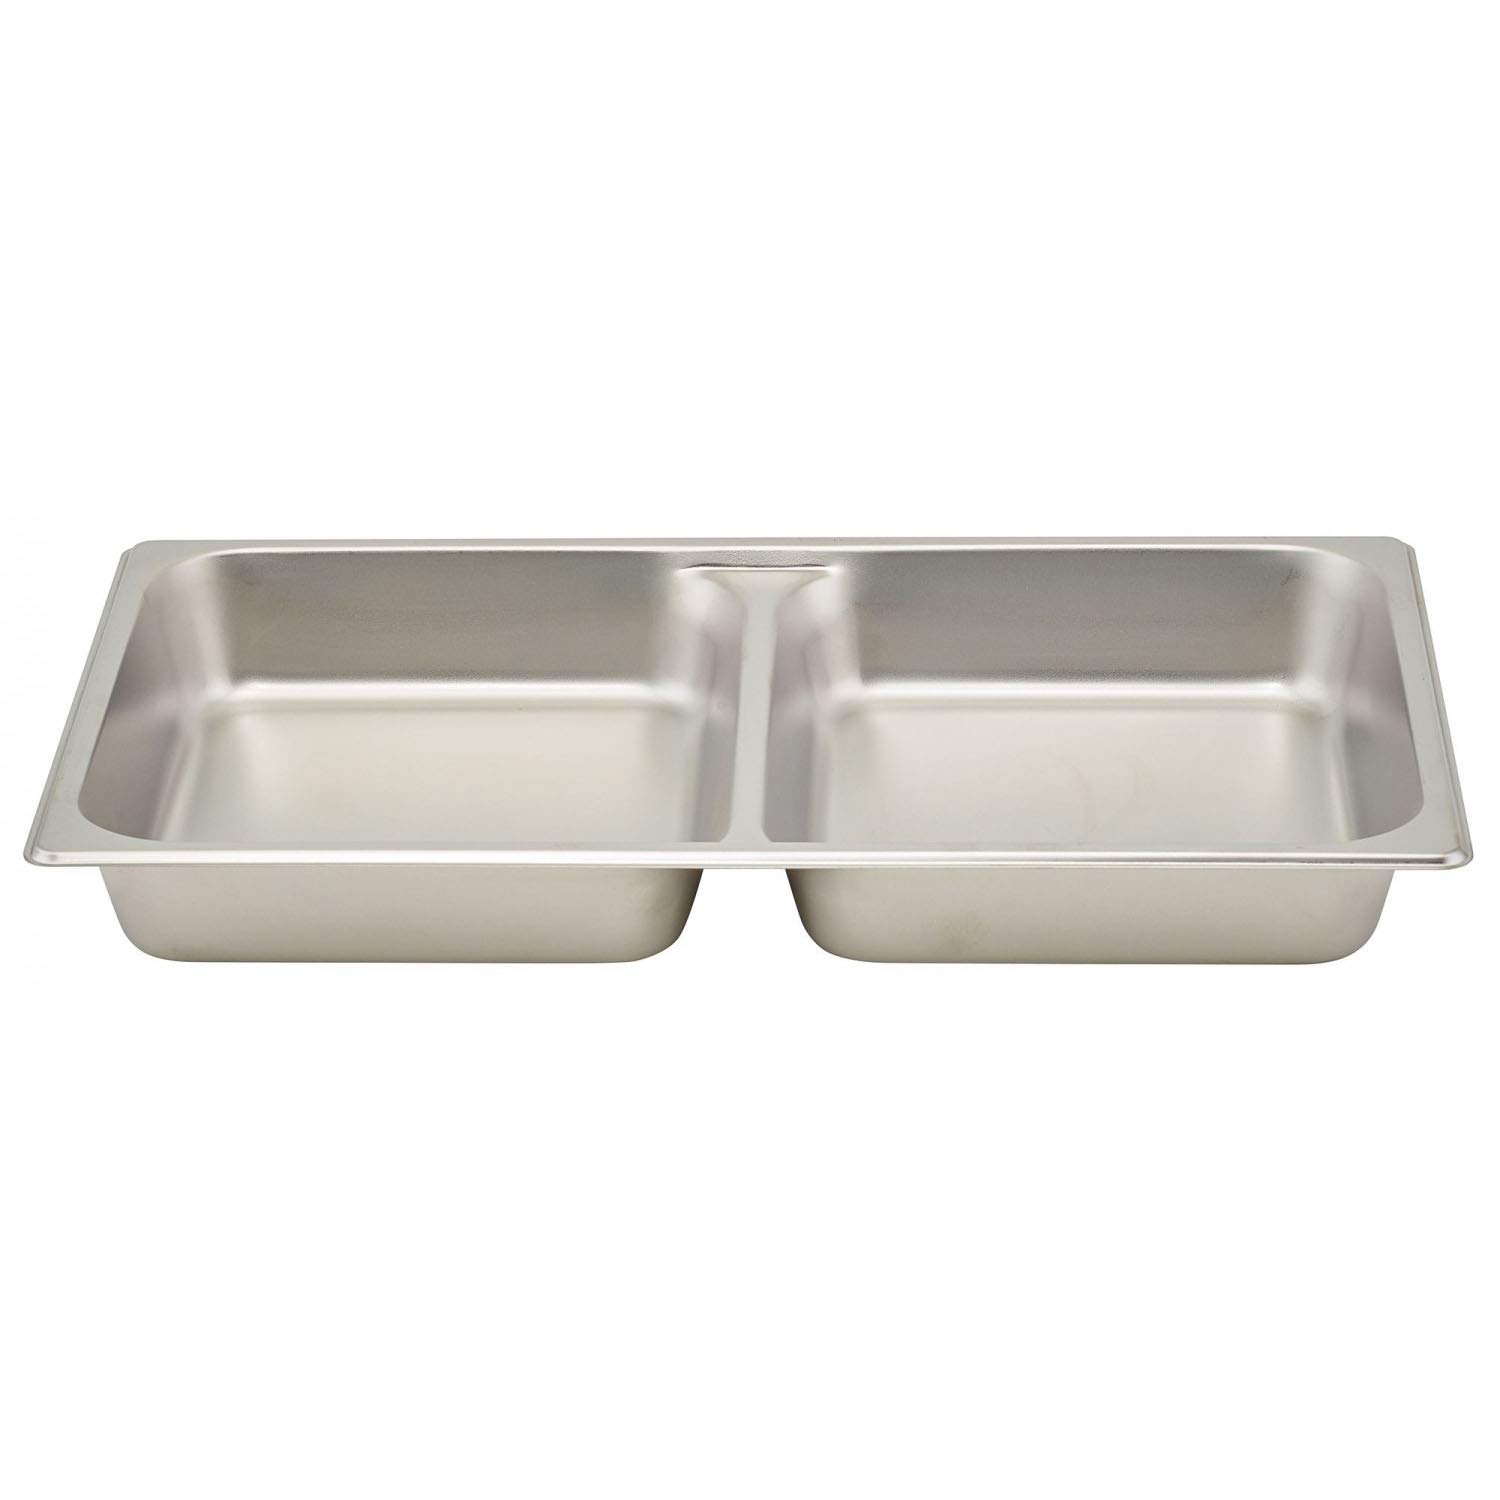 Tiger Chef Divided Full-Size 18 x 26 inch Stainless Steel Steam Table Pan - 2-1/2 inch Deep 24 Gauge Stainless Steel 2 Pack